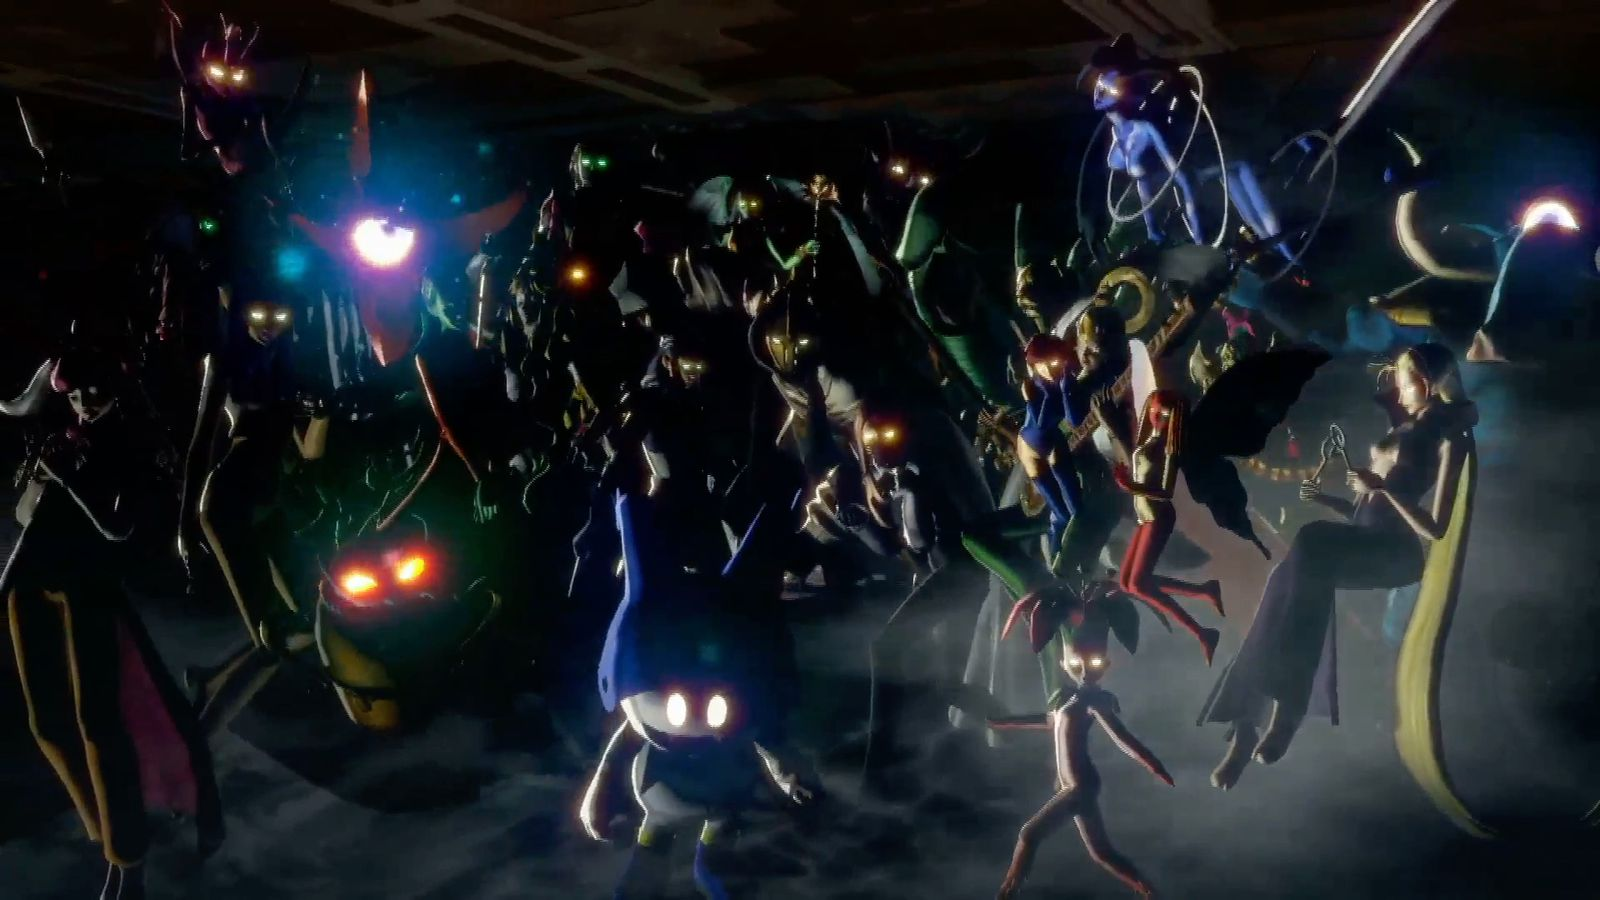 Shin Megami Tensei Is Headed To Nintendo Switch Polygon